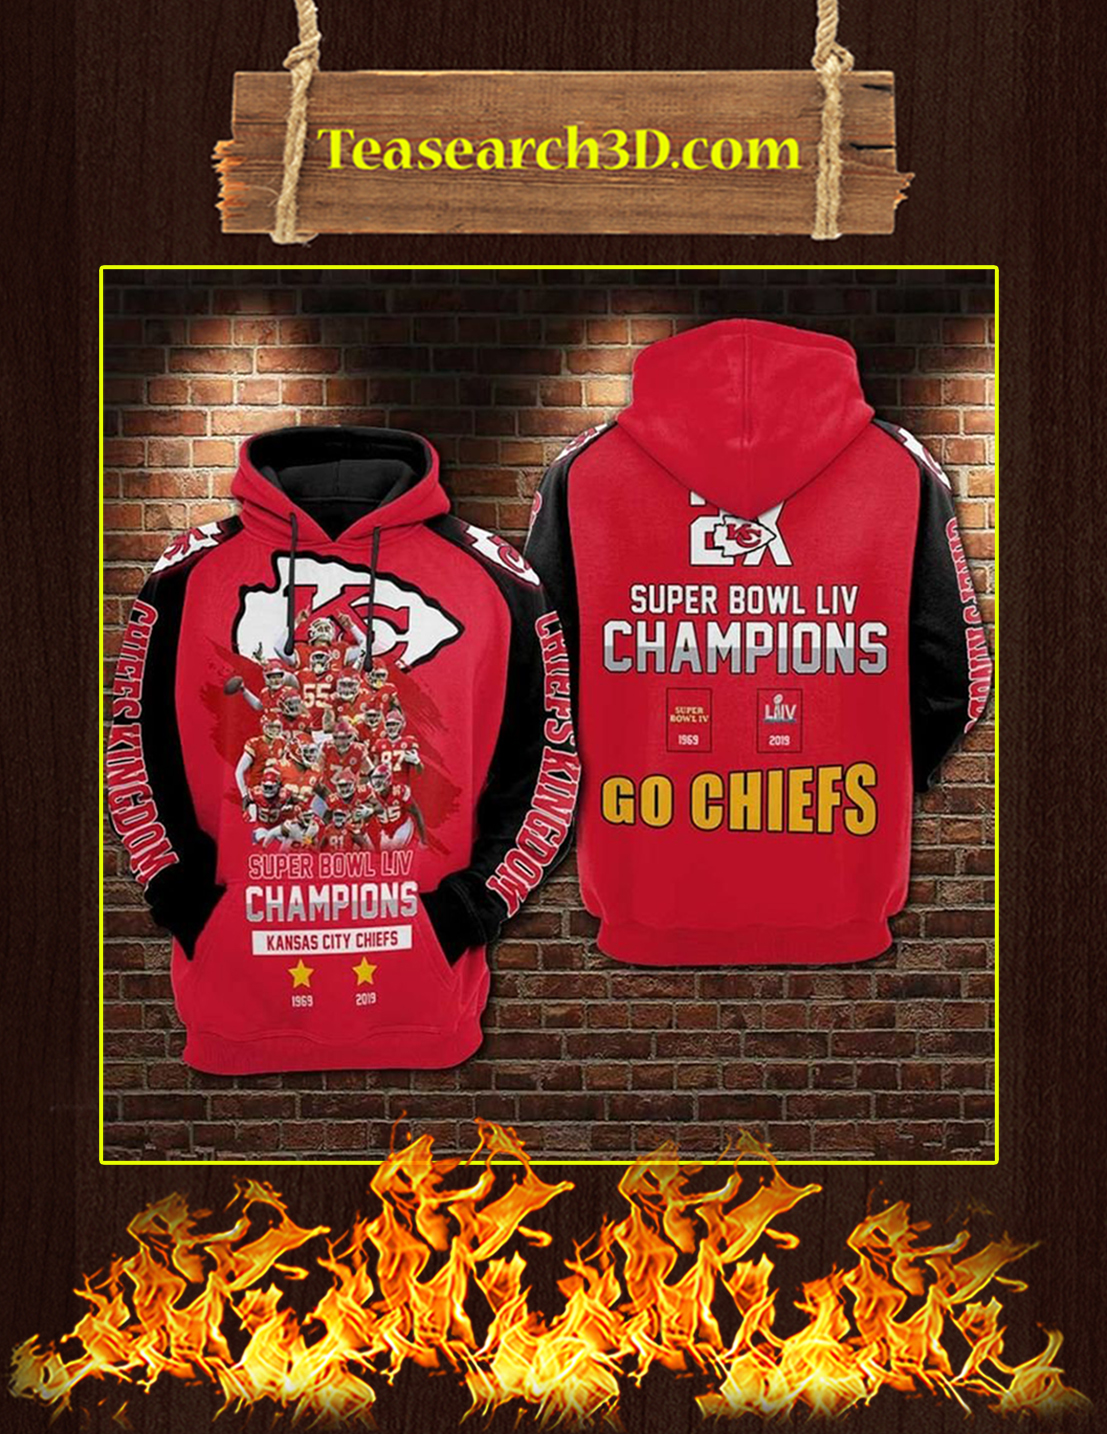 Super Bowl LIV Champions Go Chiefs 3D Full Printing Hoodie Pic 2